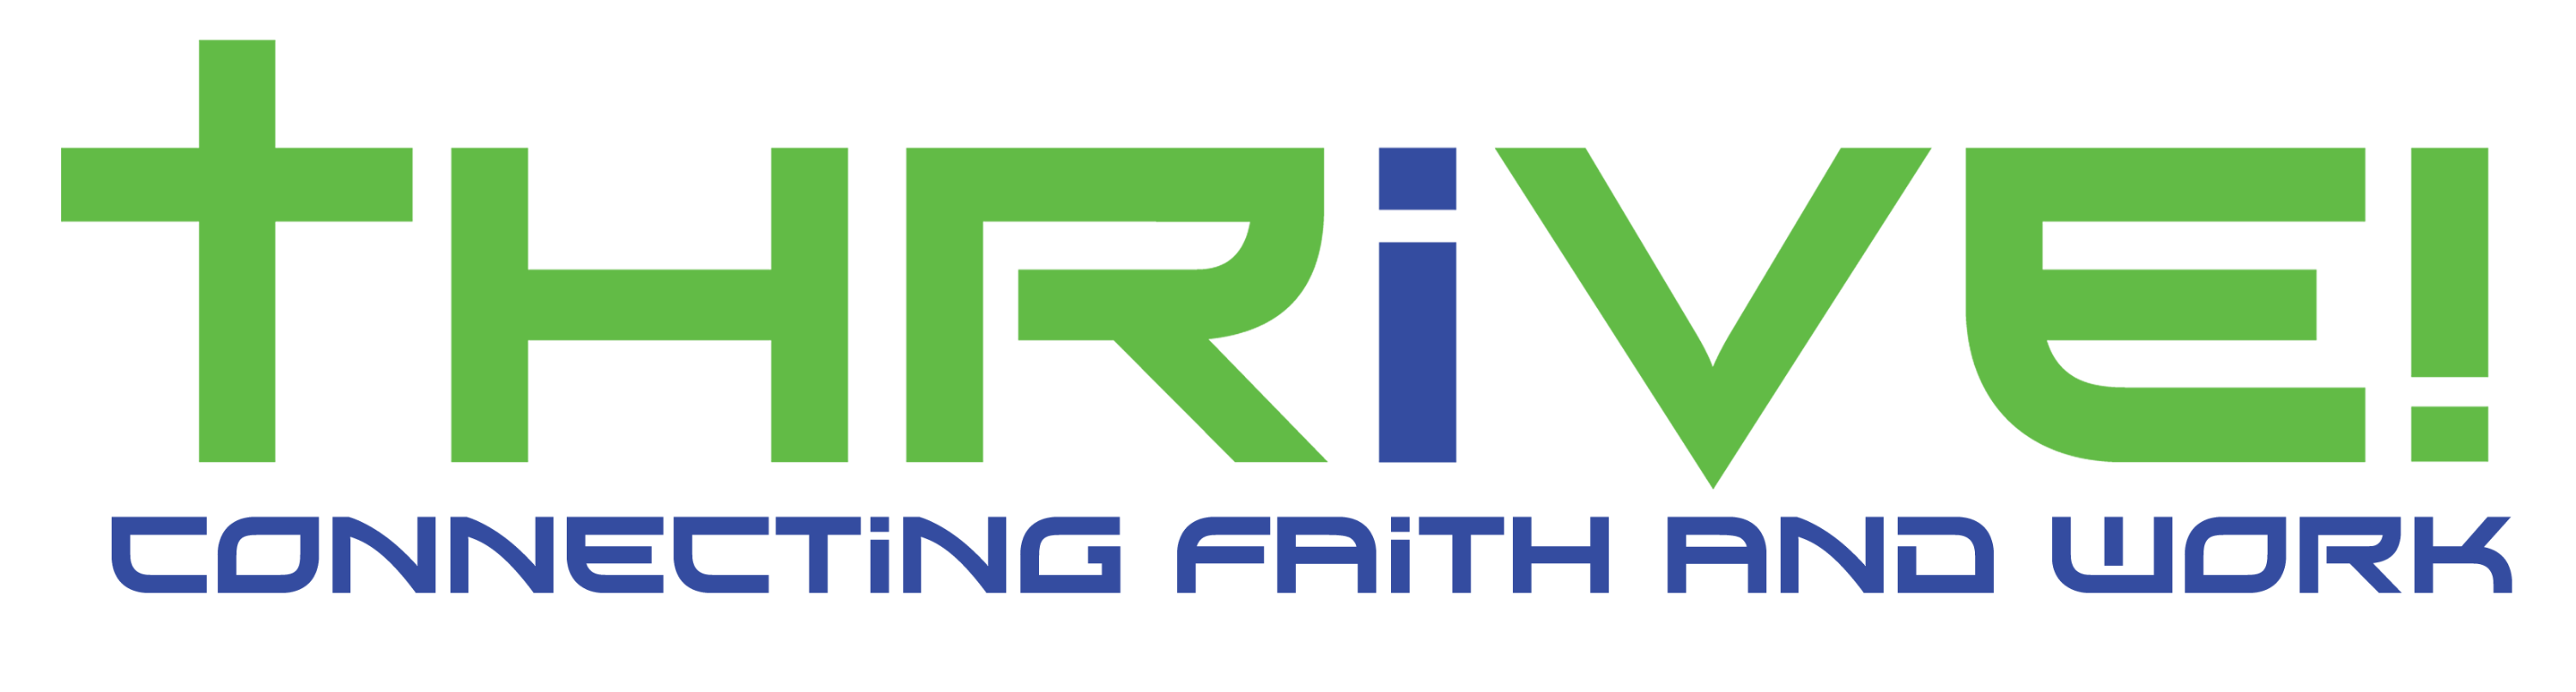 Thrive! Shoreview